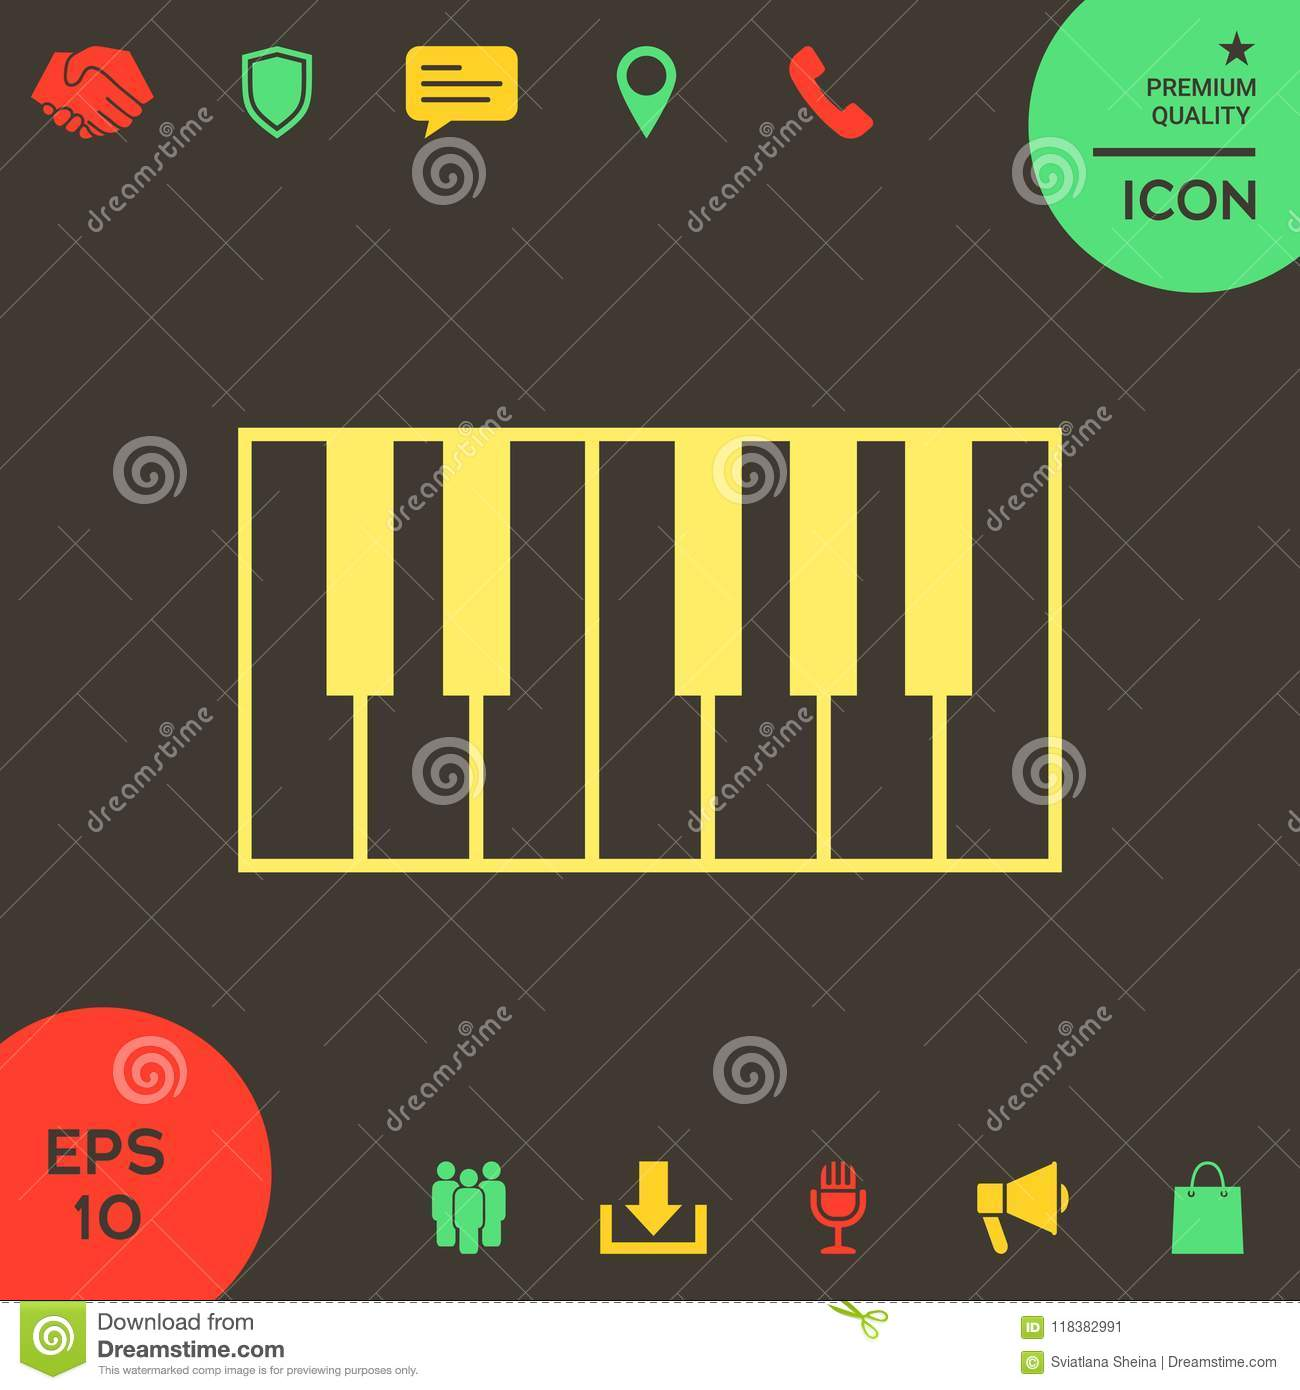 Piano Keyboard Icon Stock Vector Illustration Of Concept 118382991